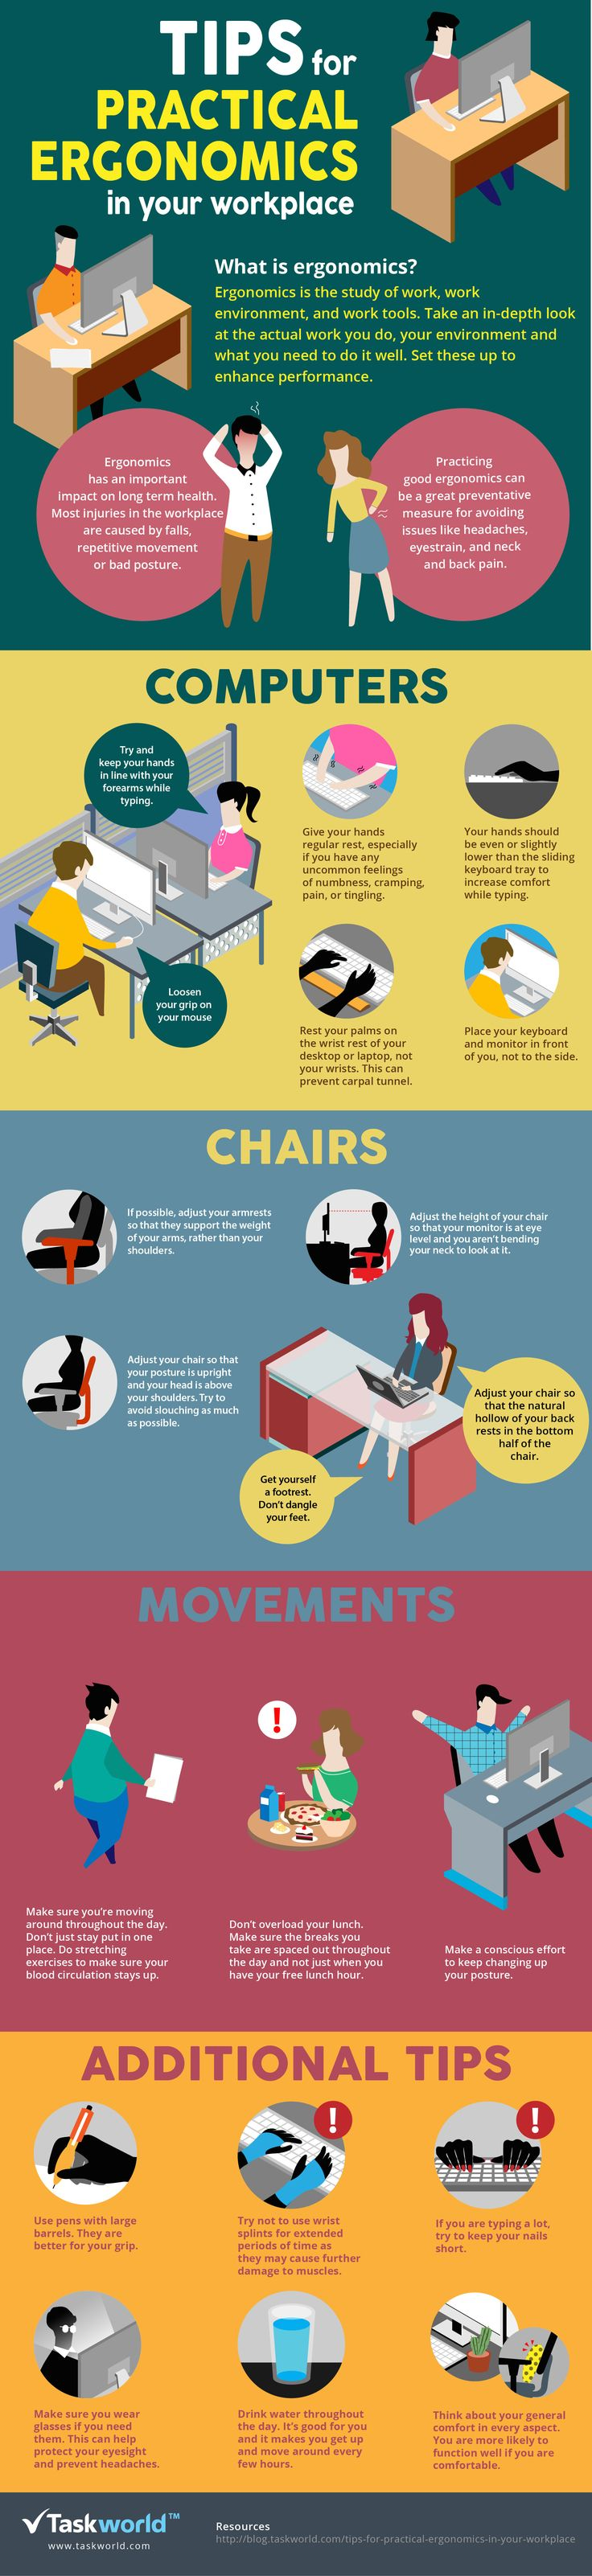 tips for practical ergonomics in your workplace infographic